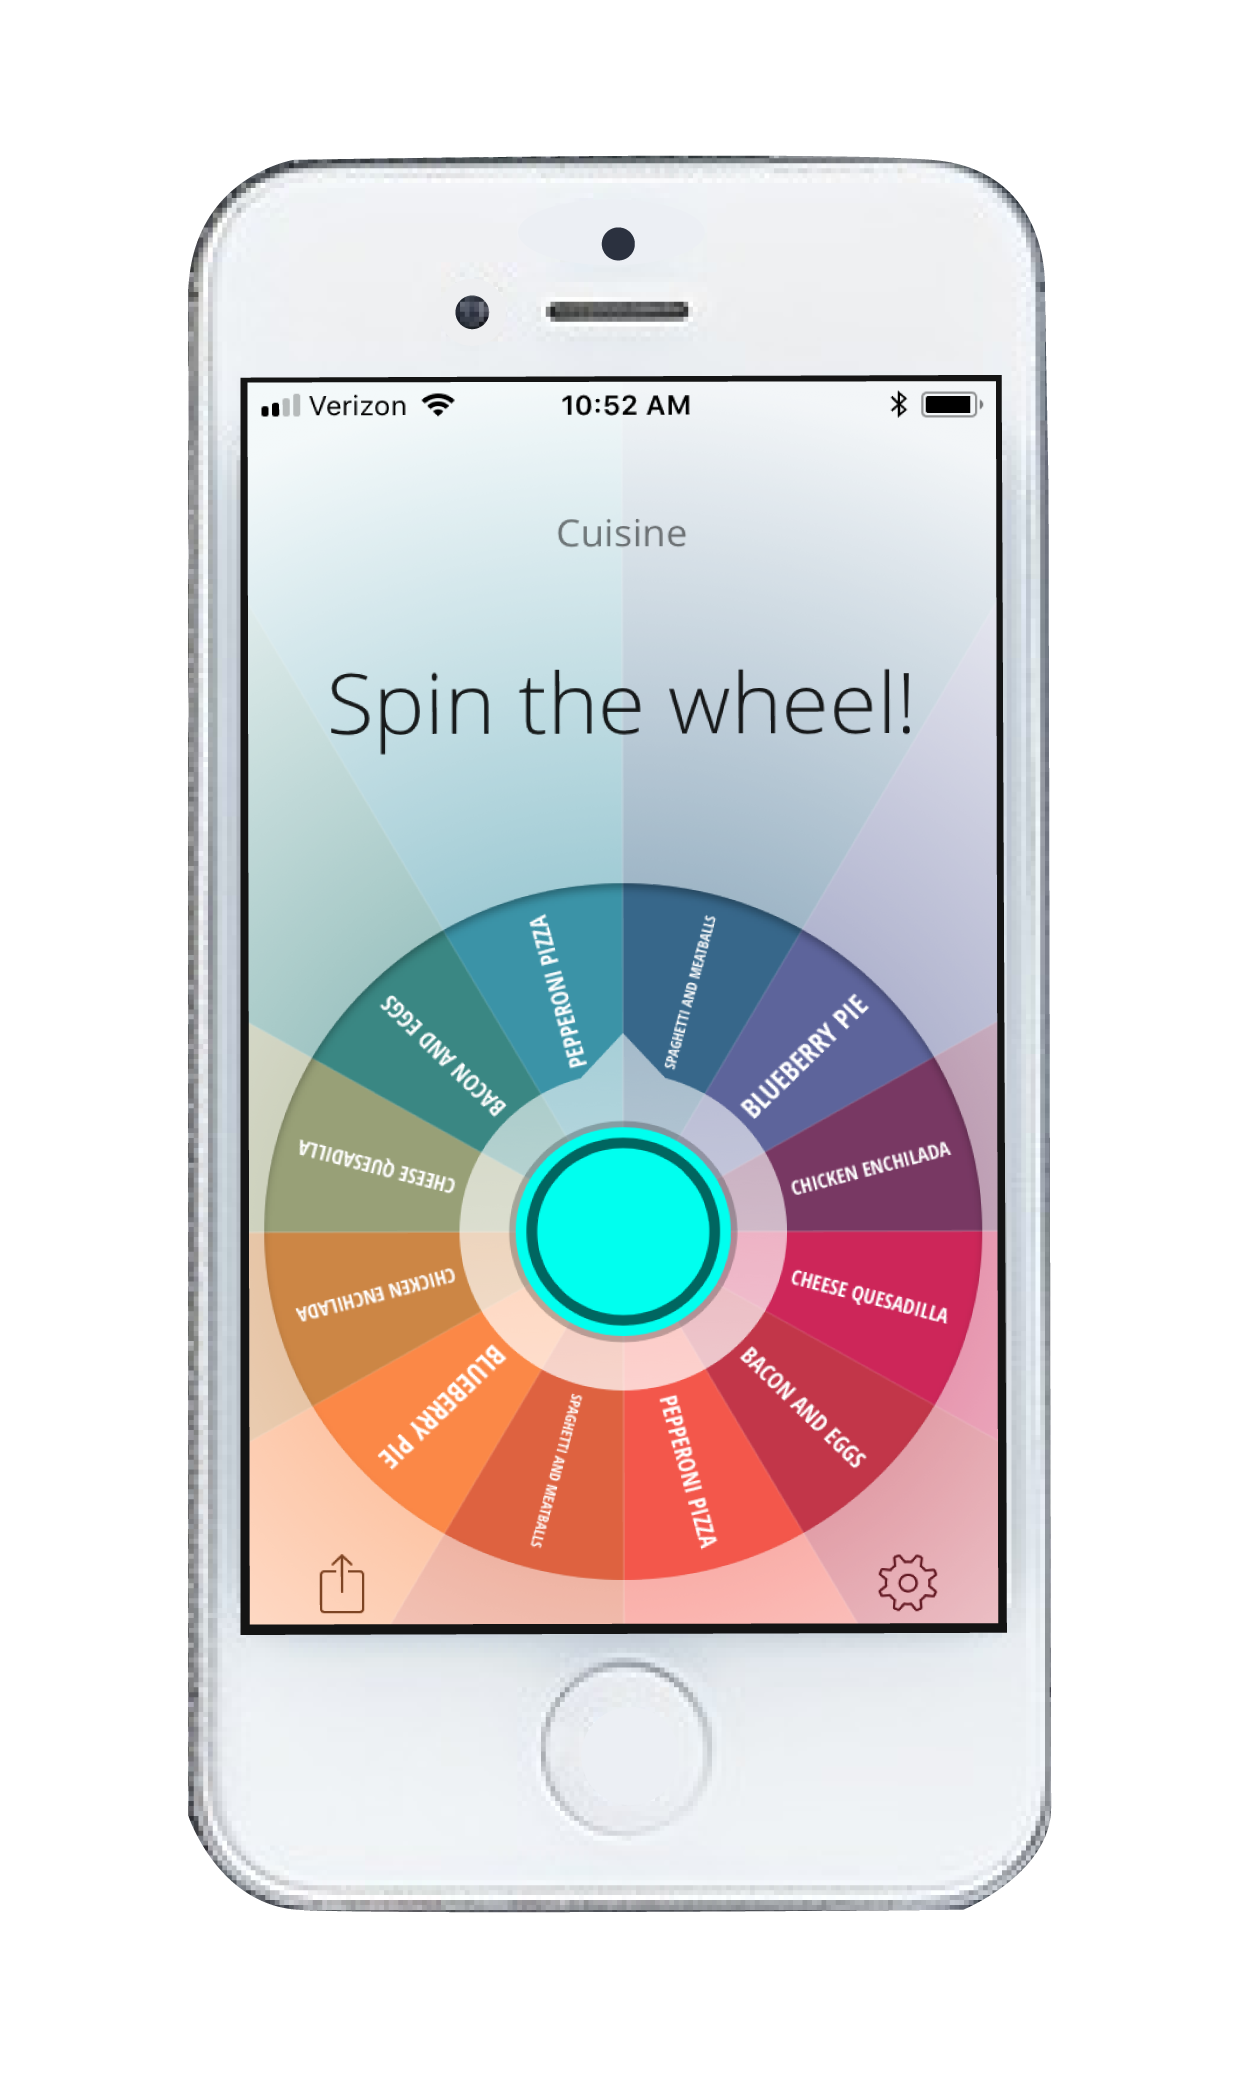 Spruce Up Your Teaching Routine With this Fun App